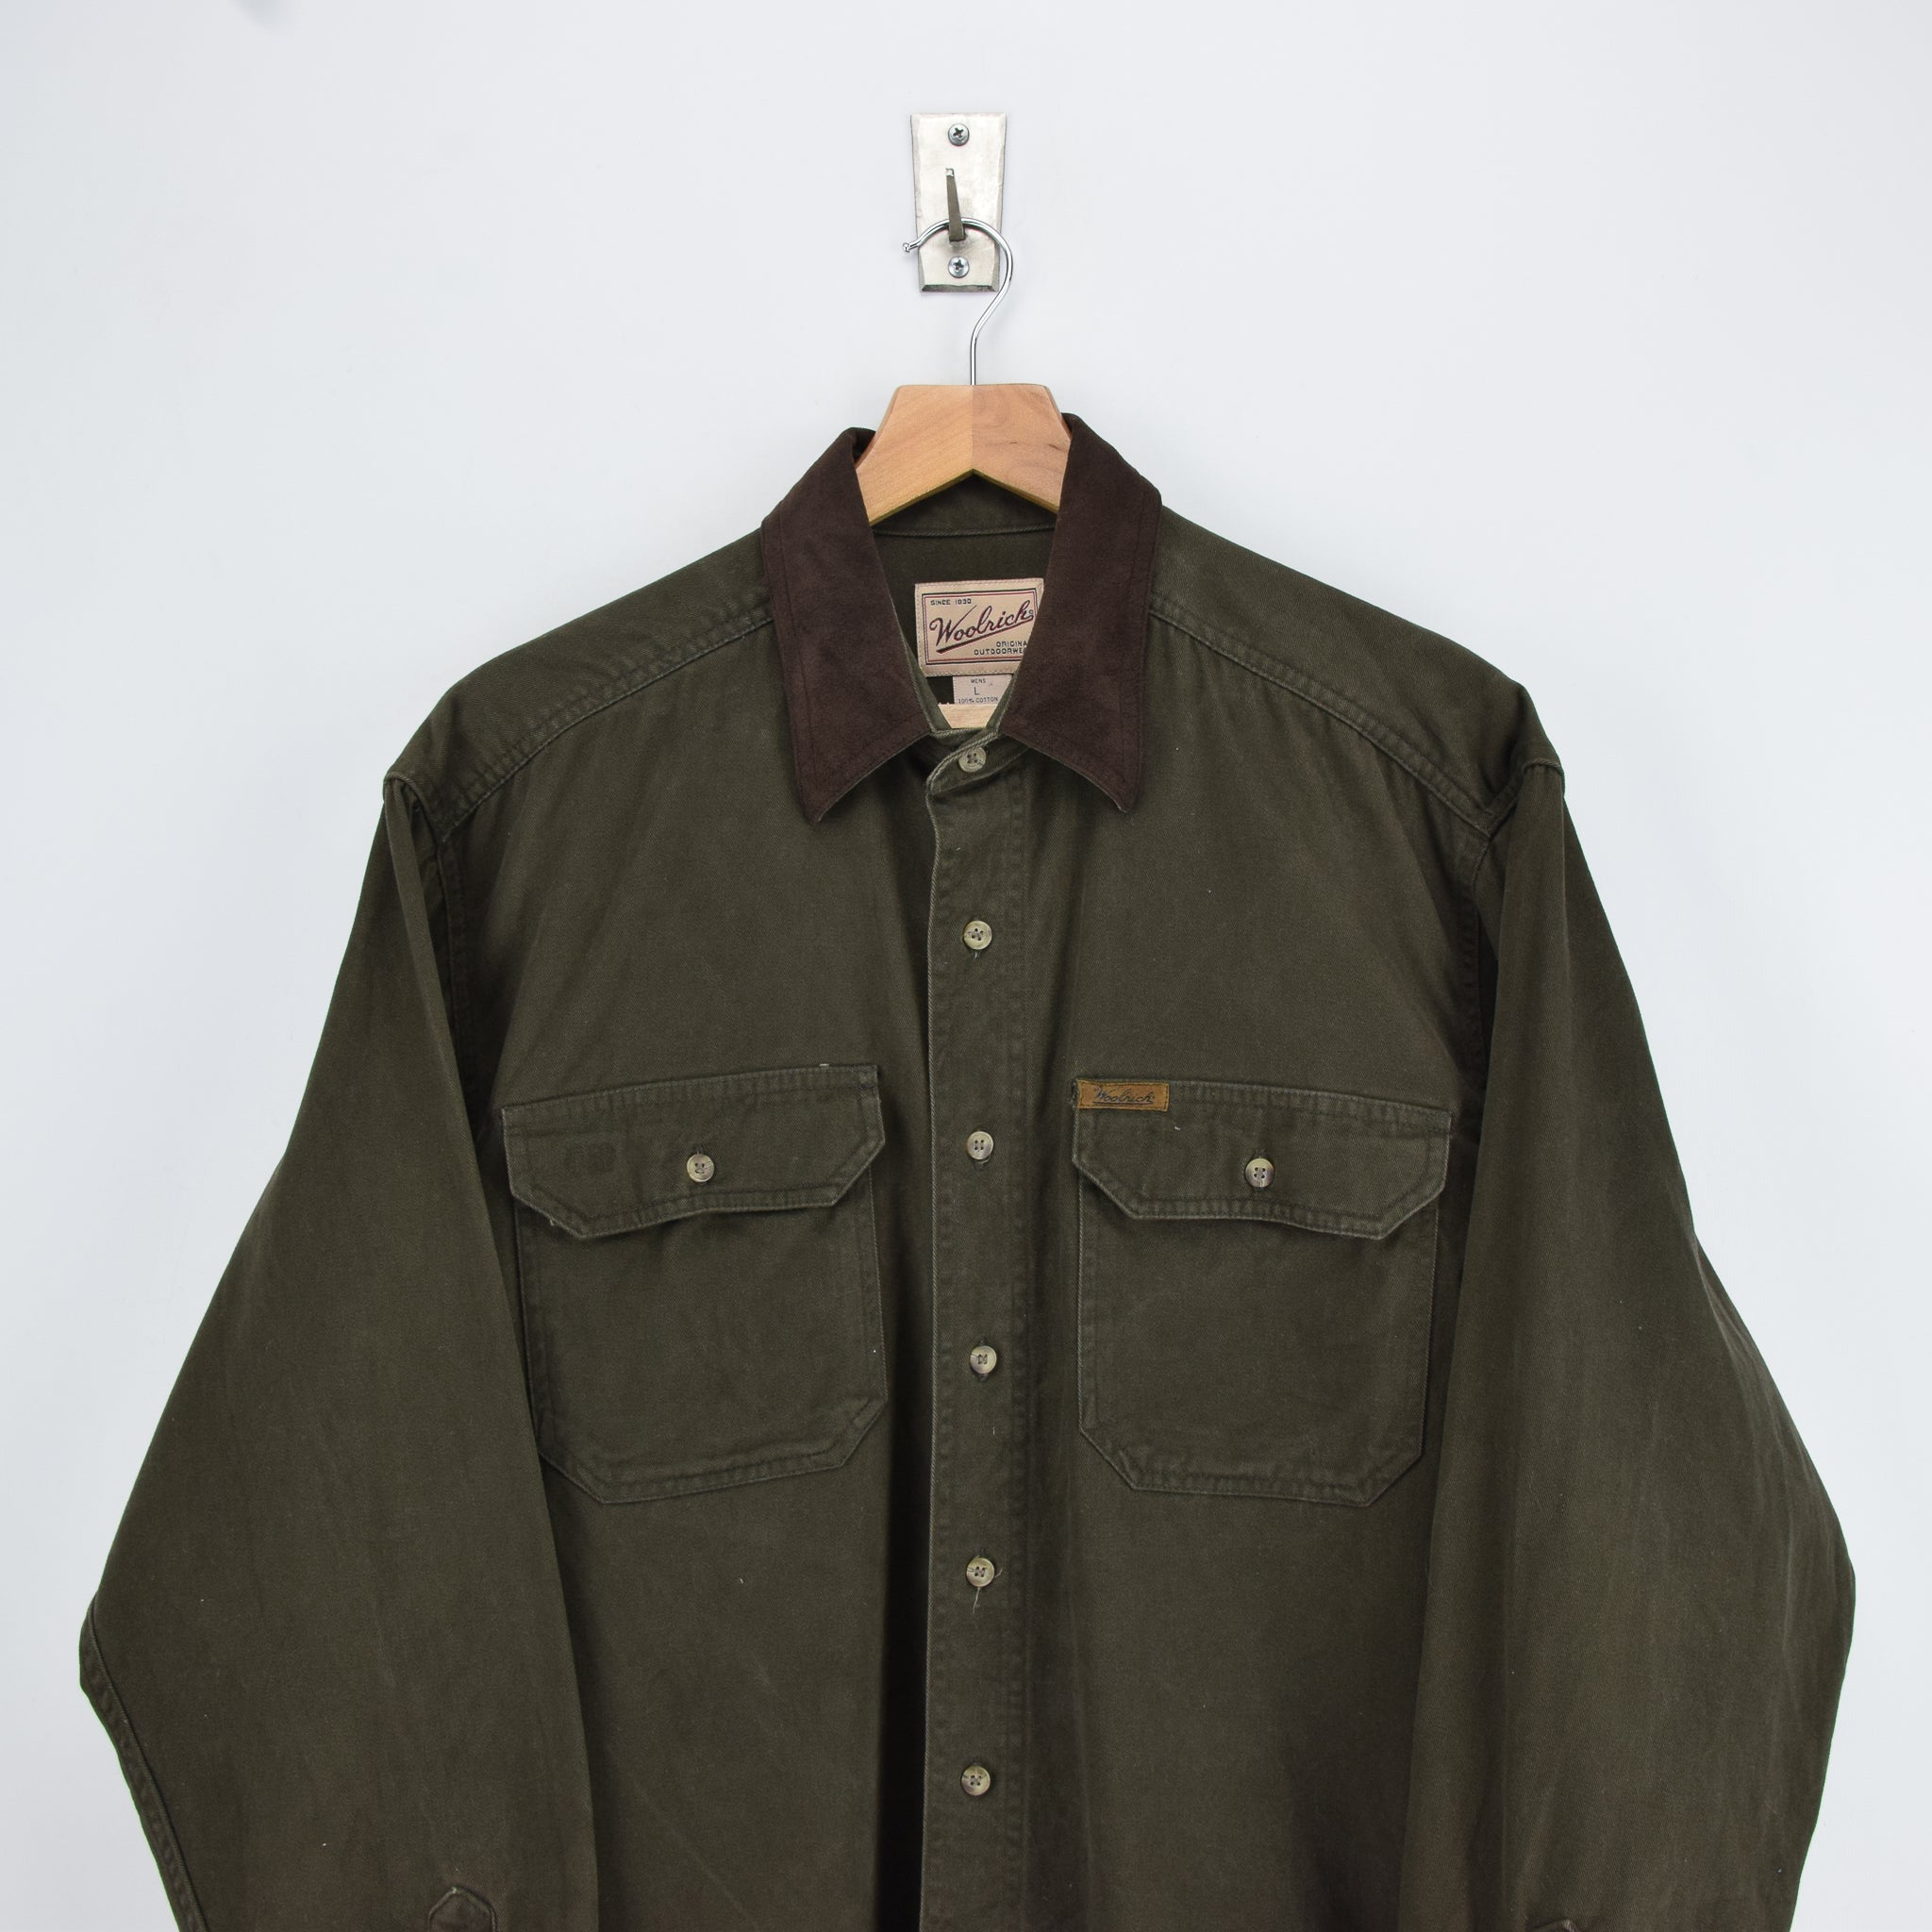 Vintage Woolrich Dark Green CPO Style Cotton Field Shirt L chest